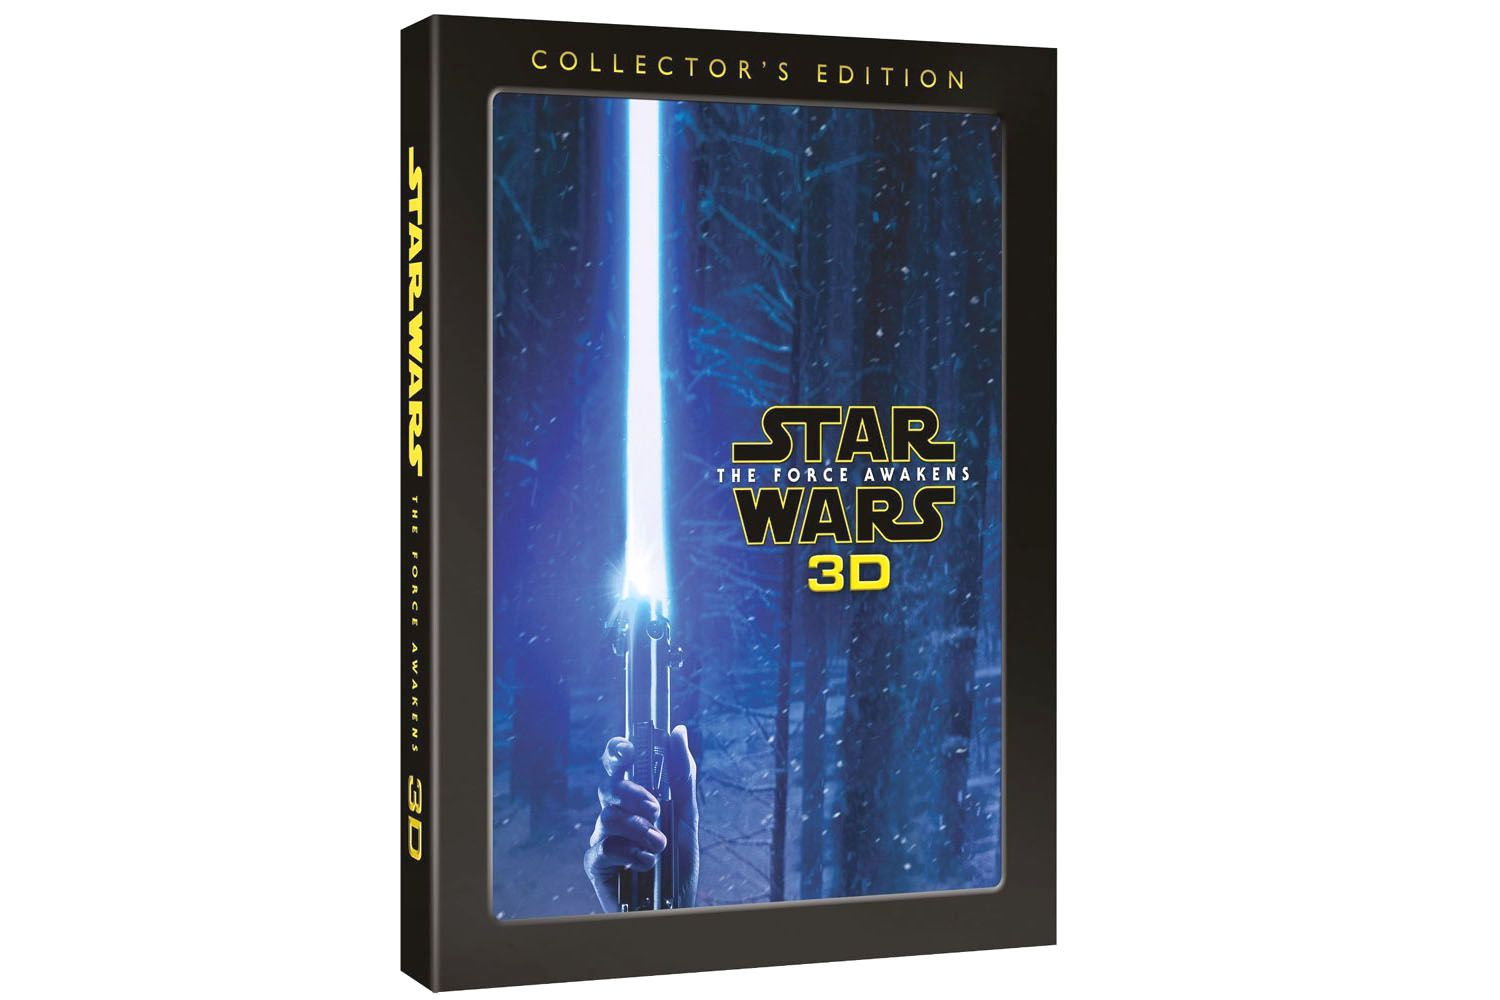 Star Wars - The Force Awakens 3D Ultimate Collector's Edition Blu-ray